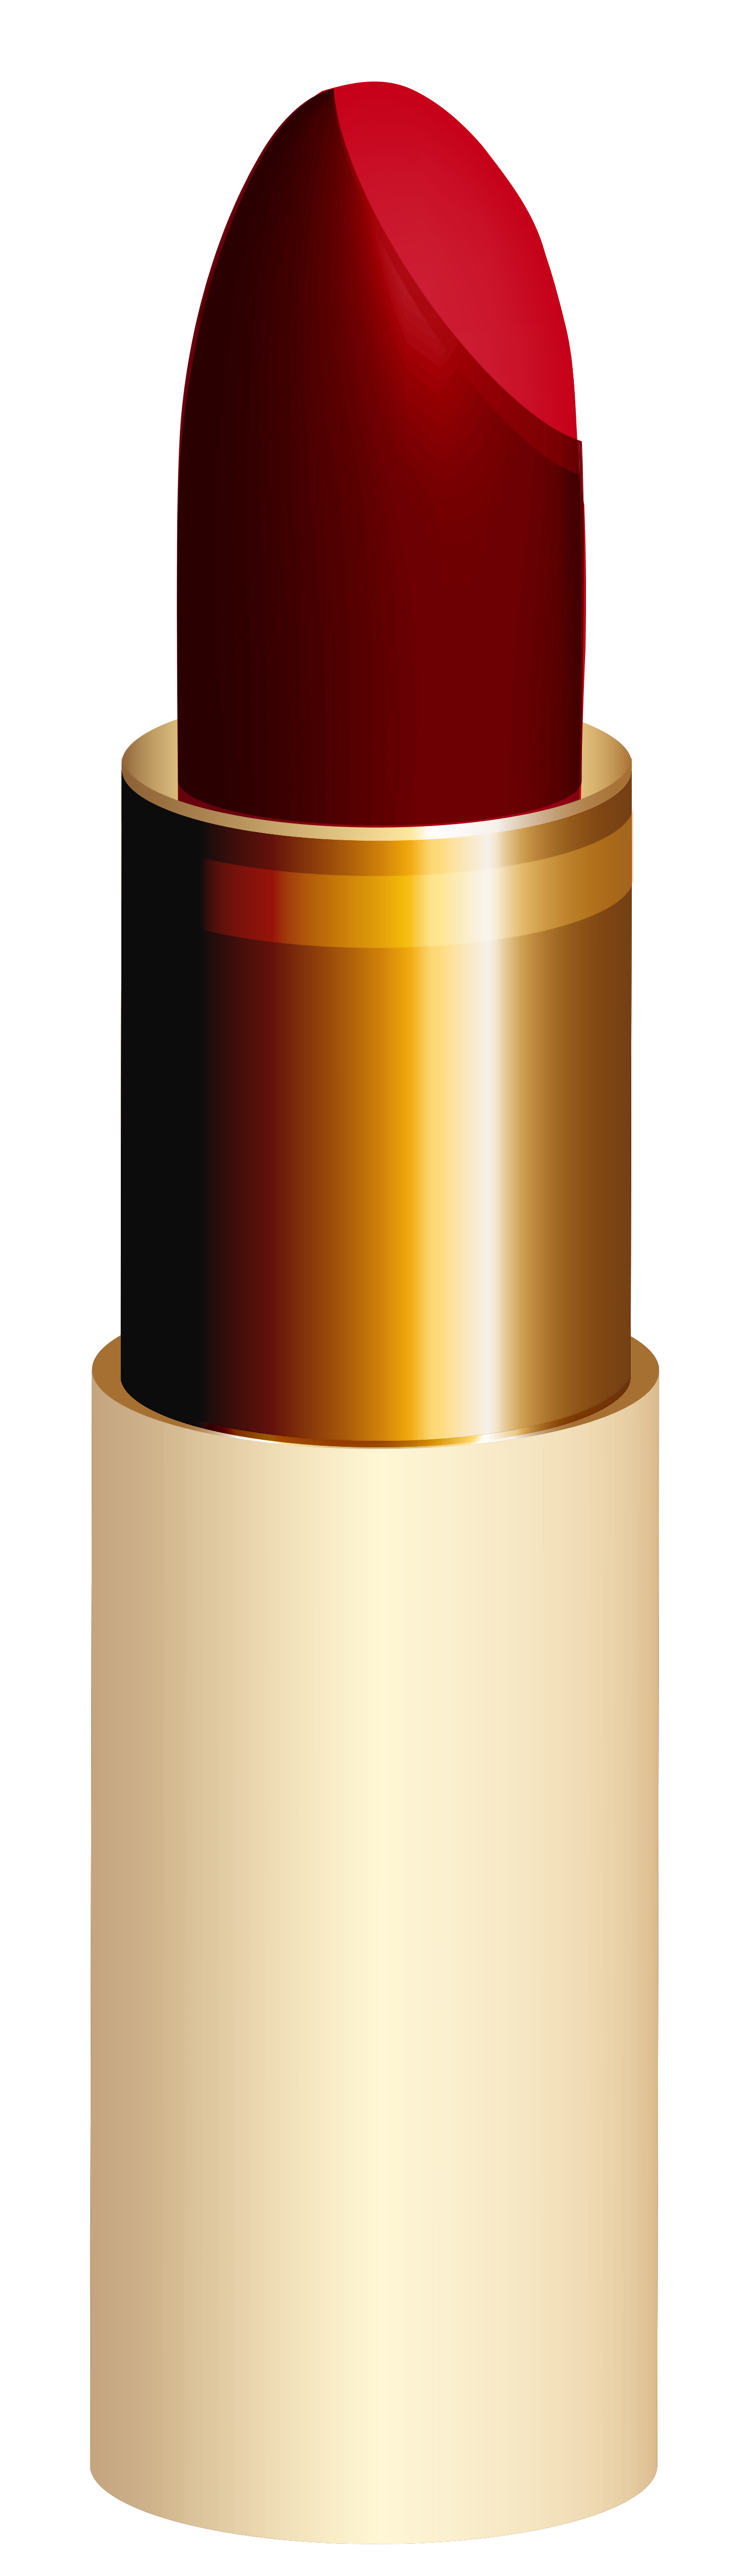 Lipstick clipart #7, Download drawings